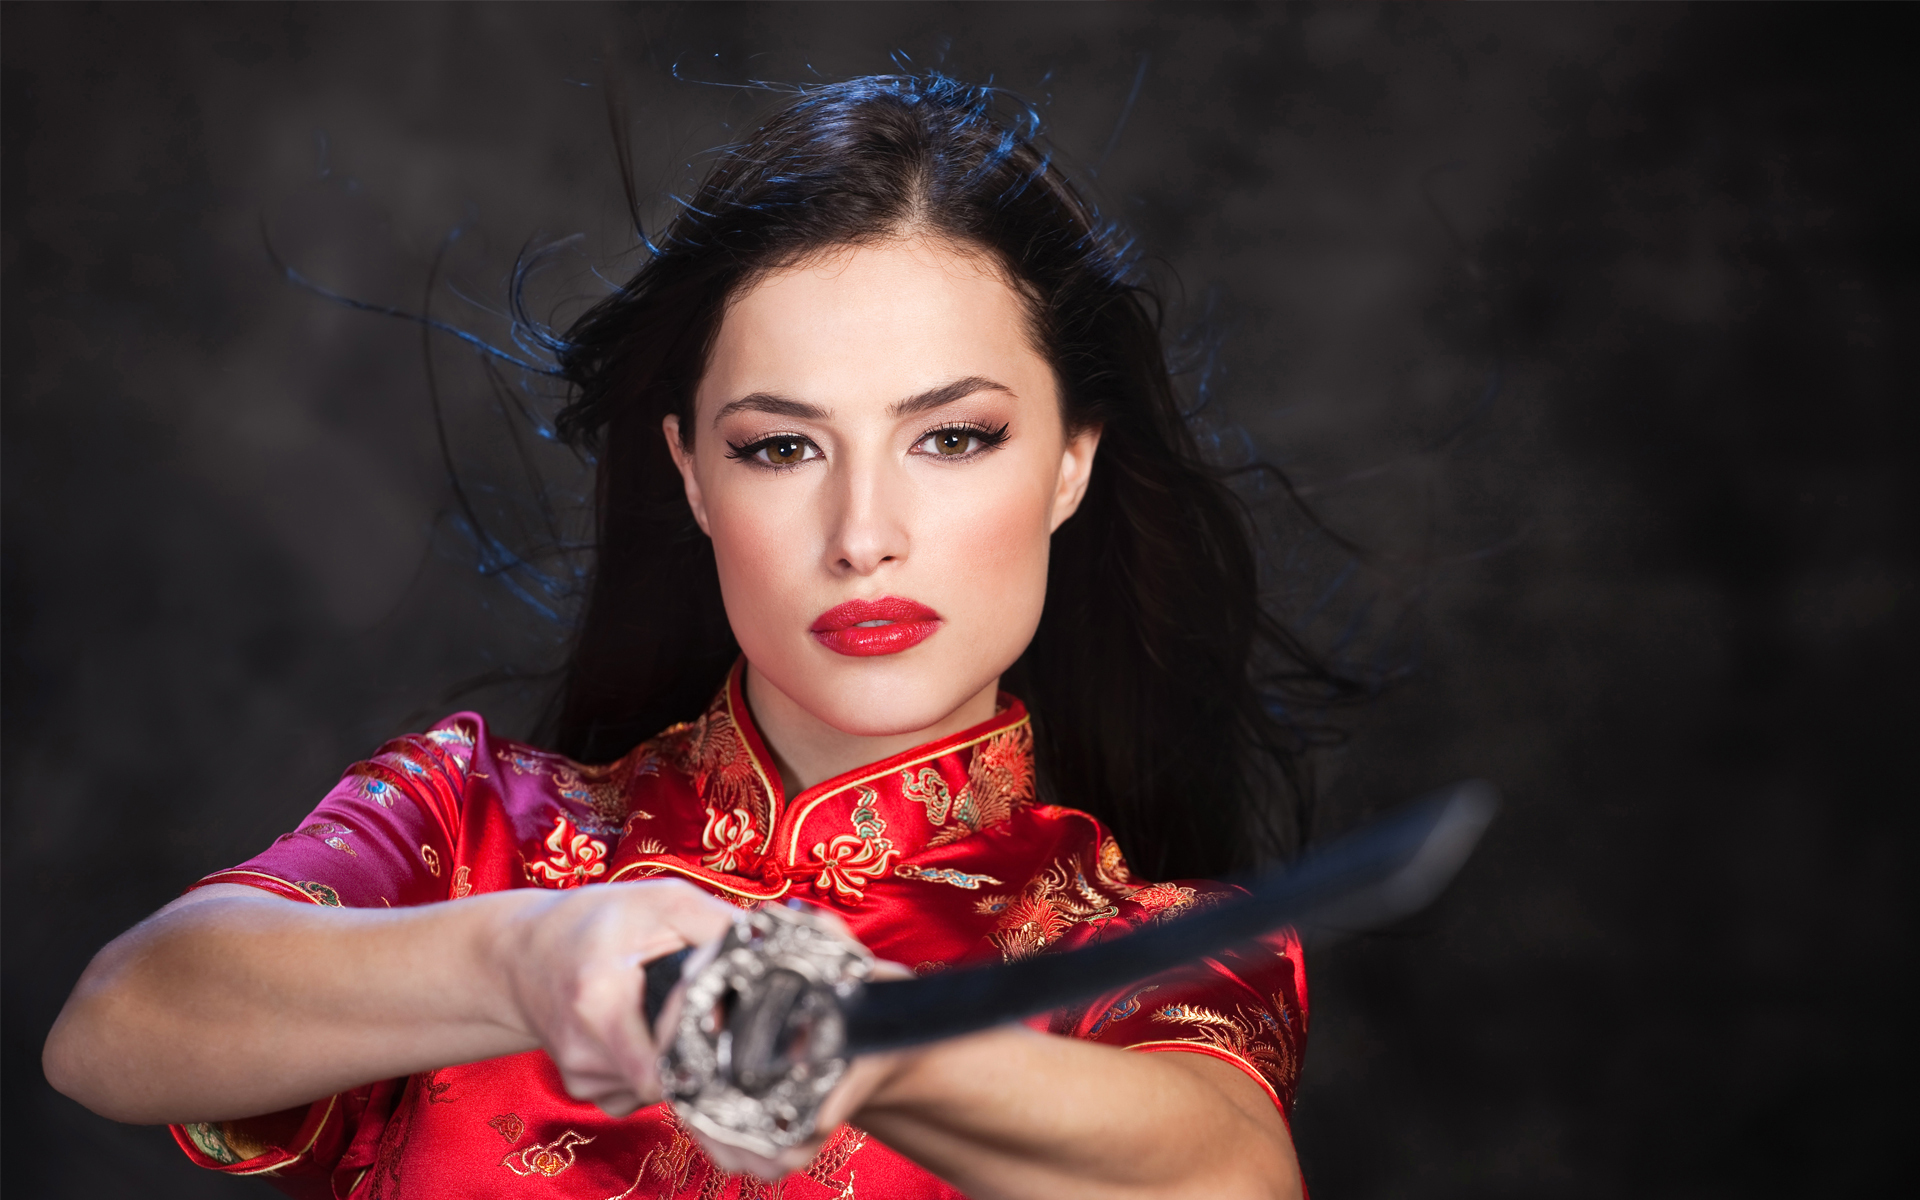 Asian hd wallpaper background image 1920x1200 id - Girl with sword wallpaper ...